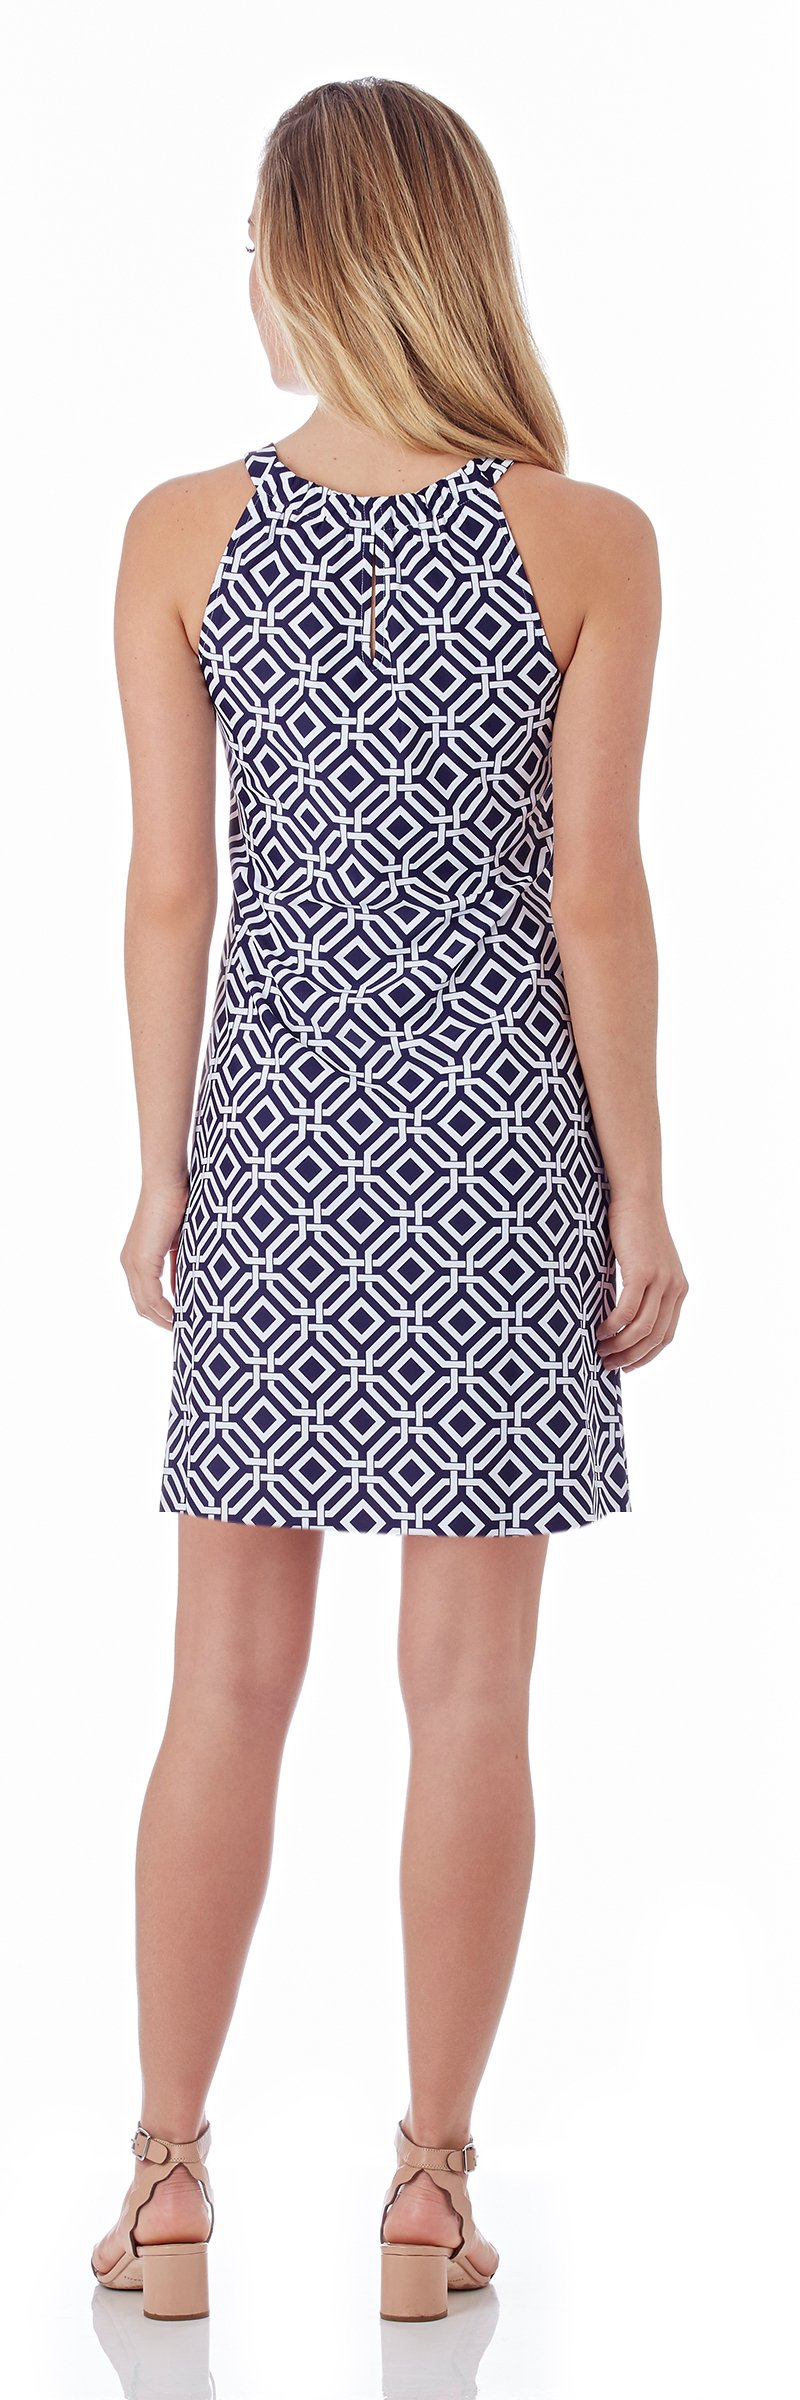 Jude Connally Lisa Dress In Grand Links Navy